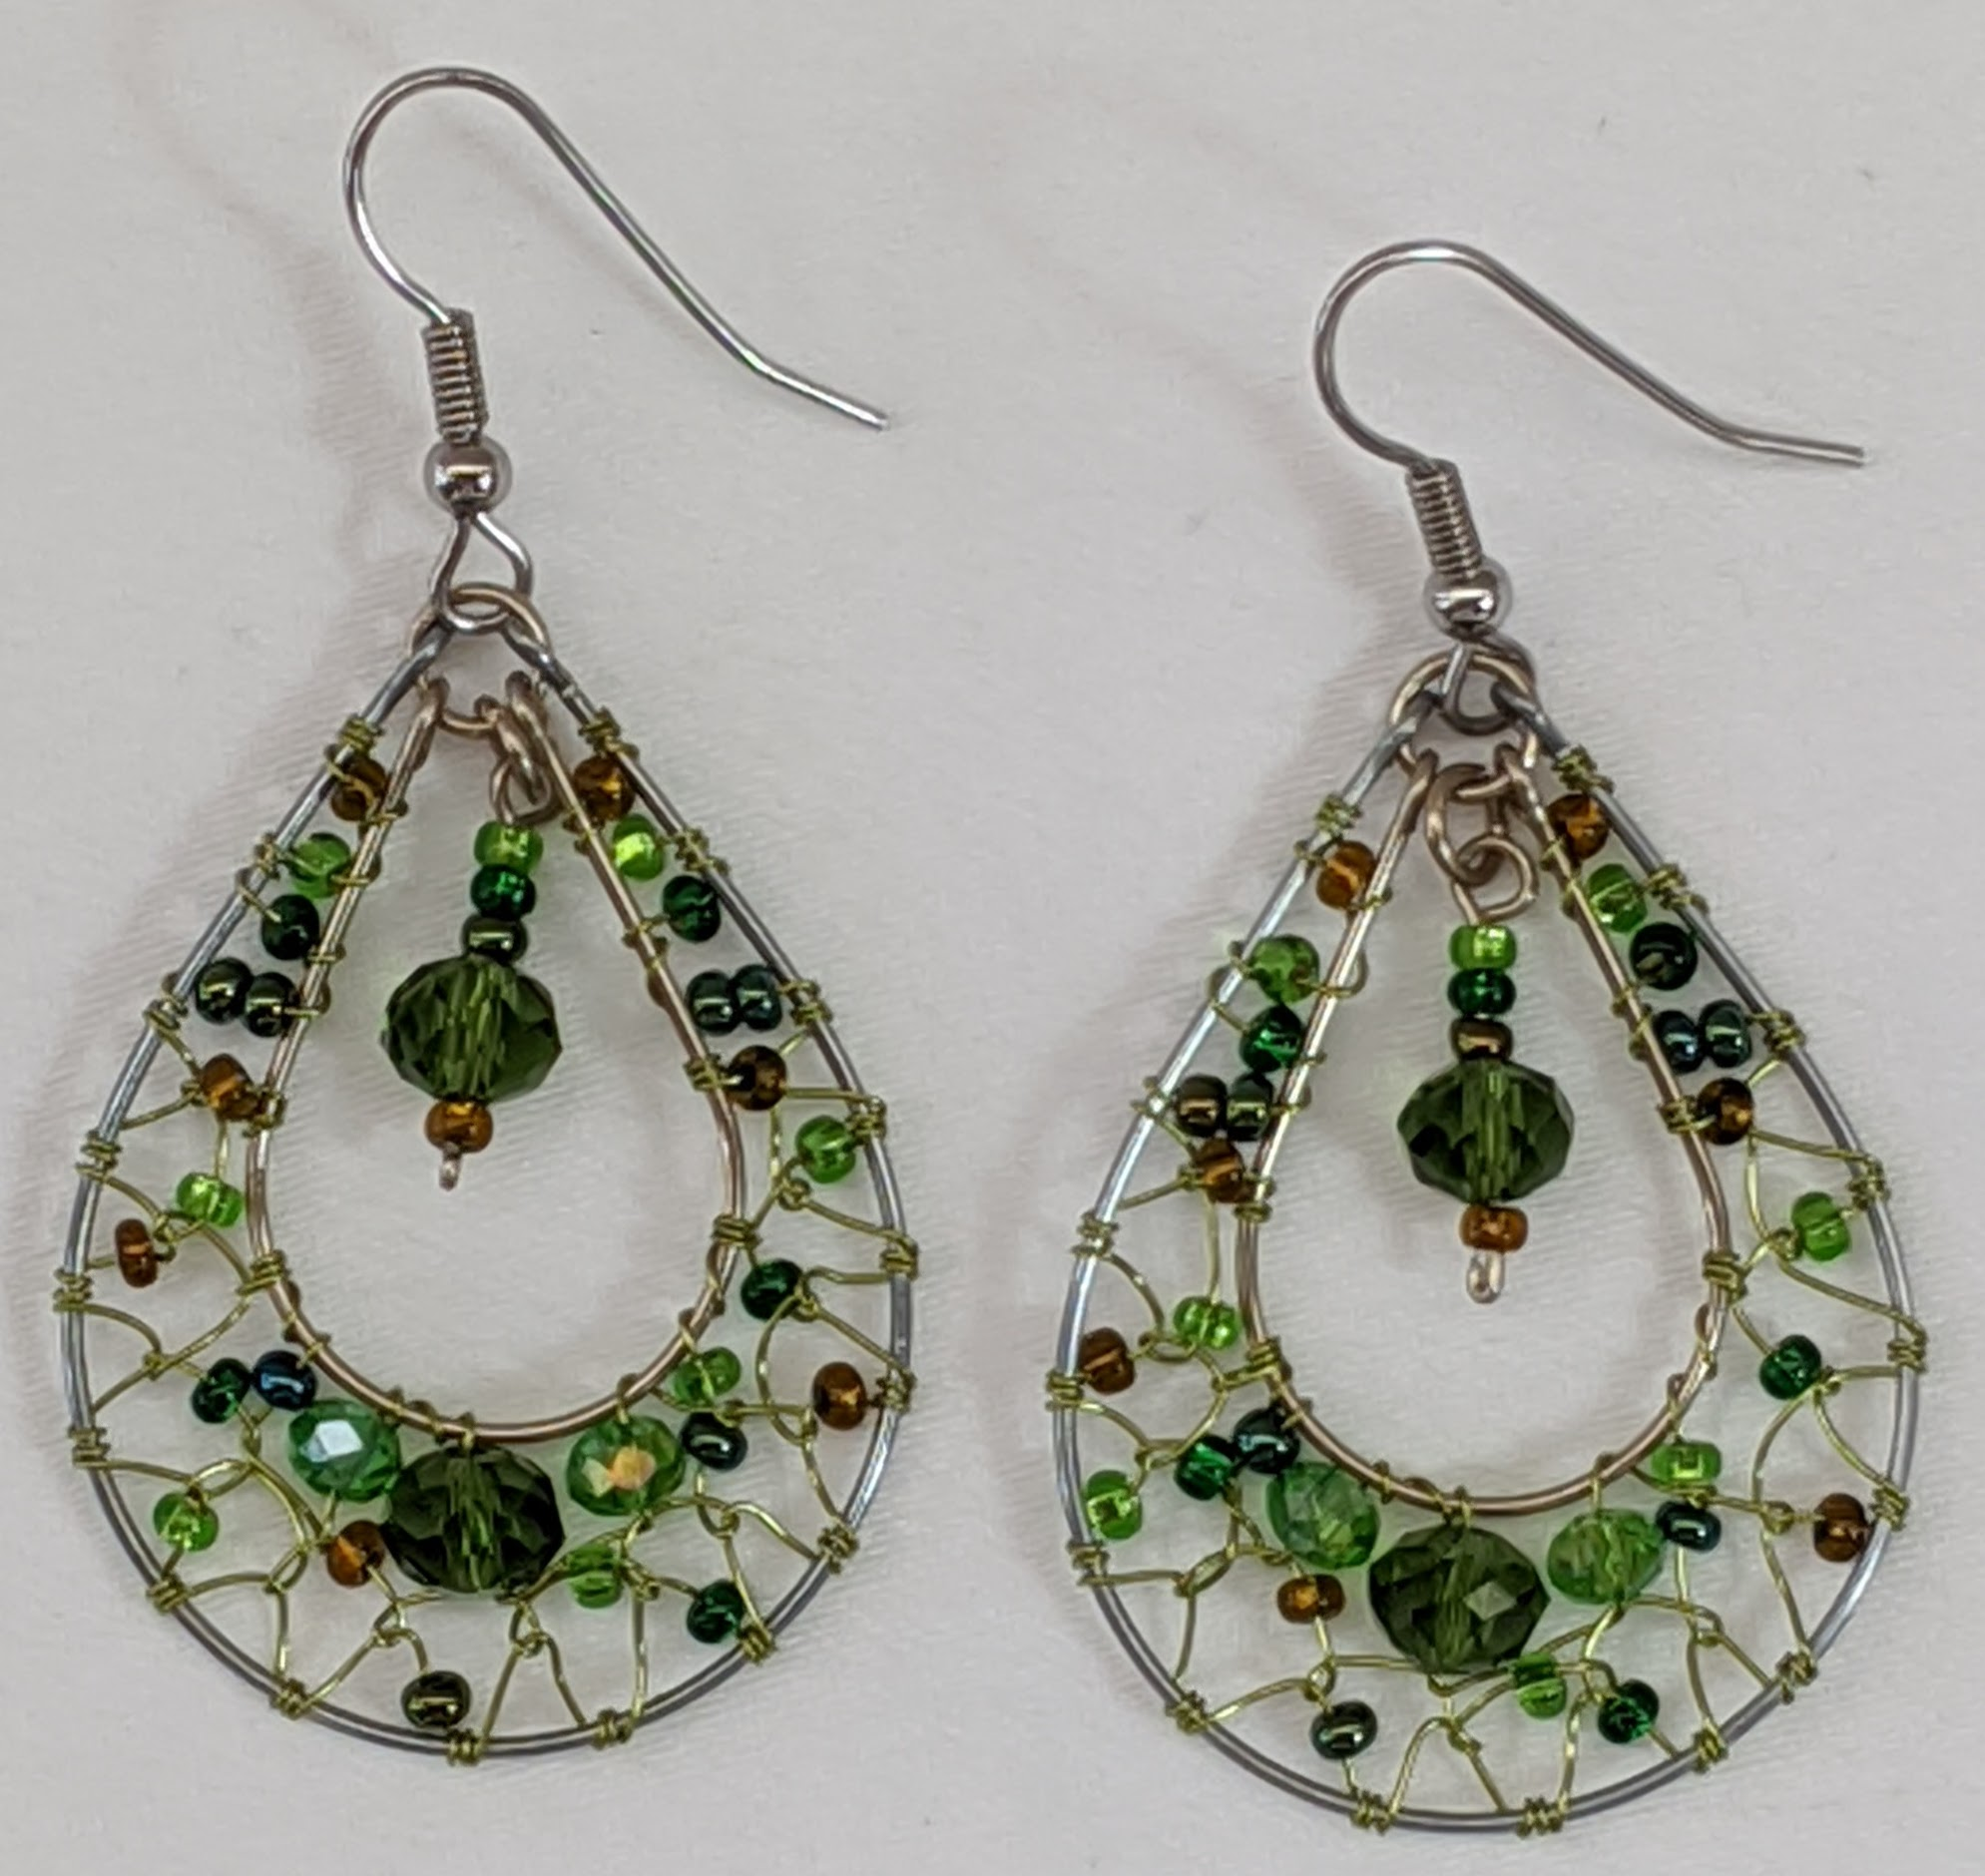 Teardrop Dreamcatcher Earrings - Greens